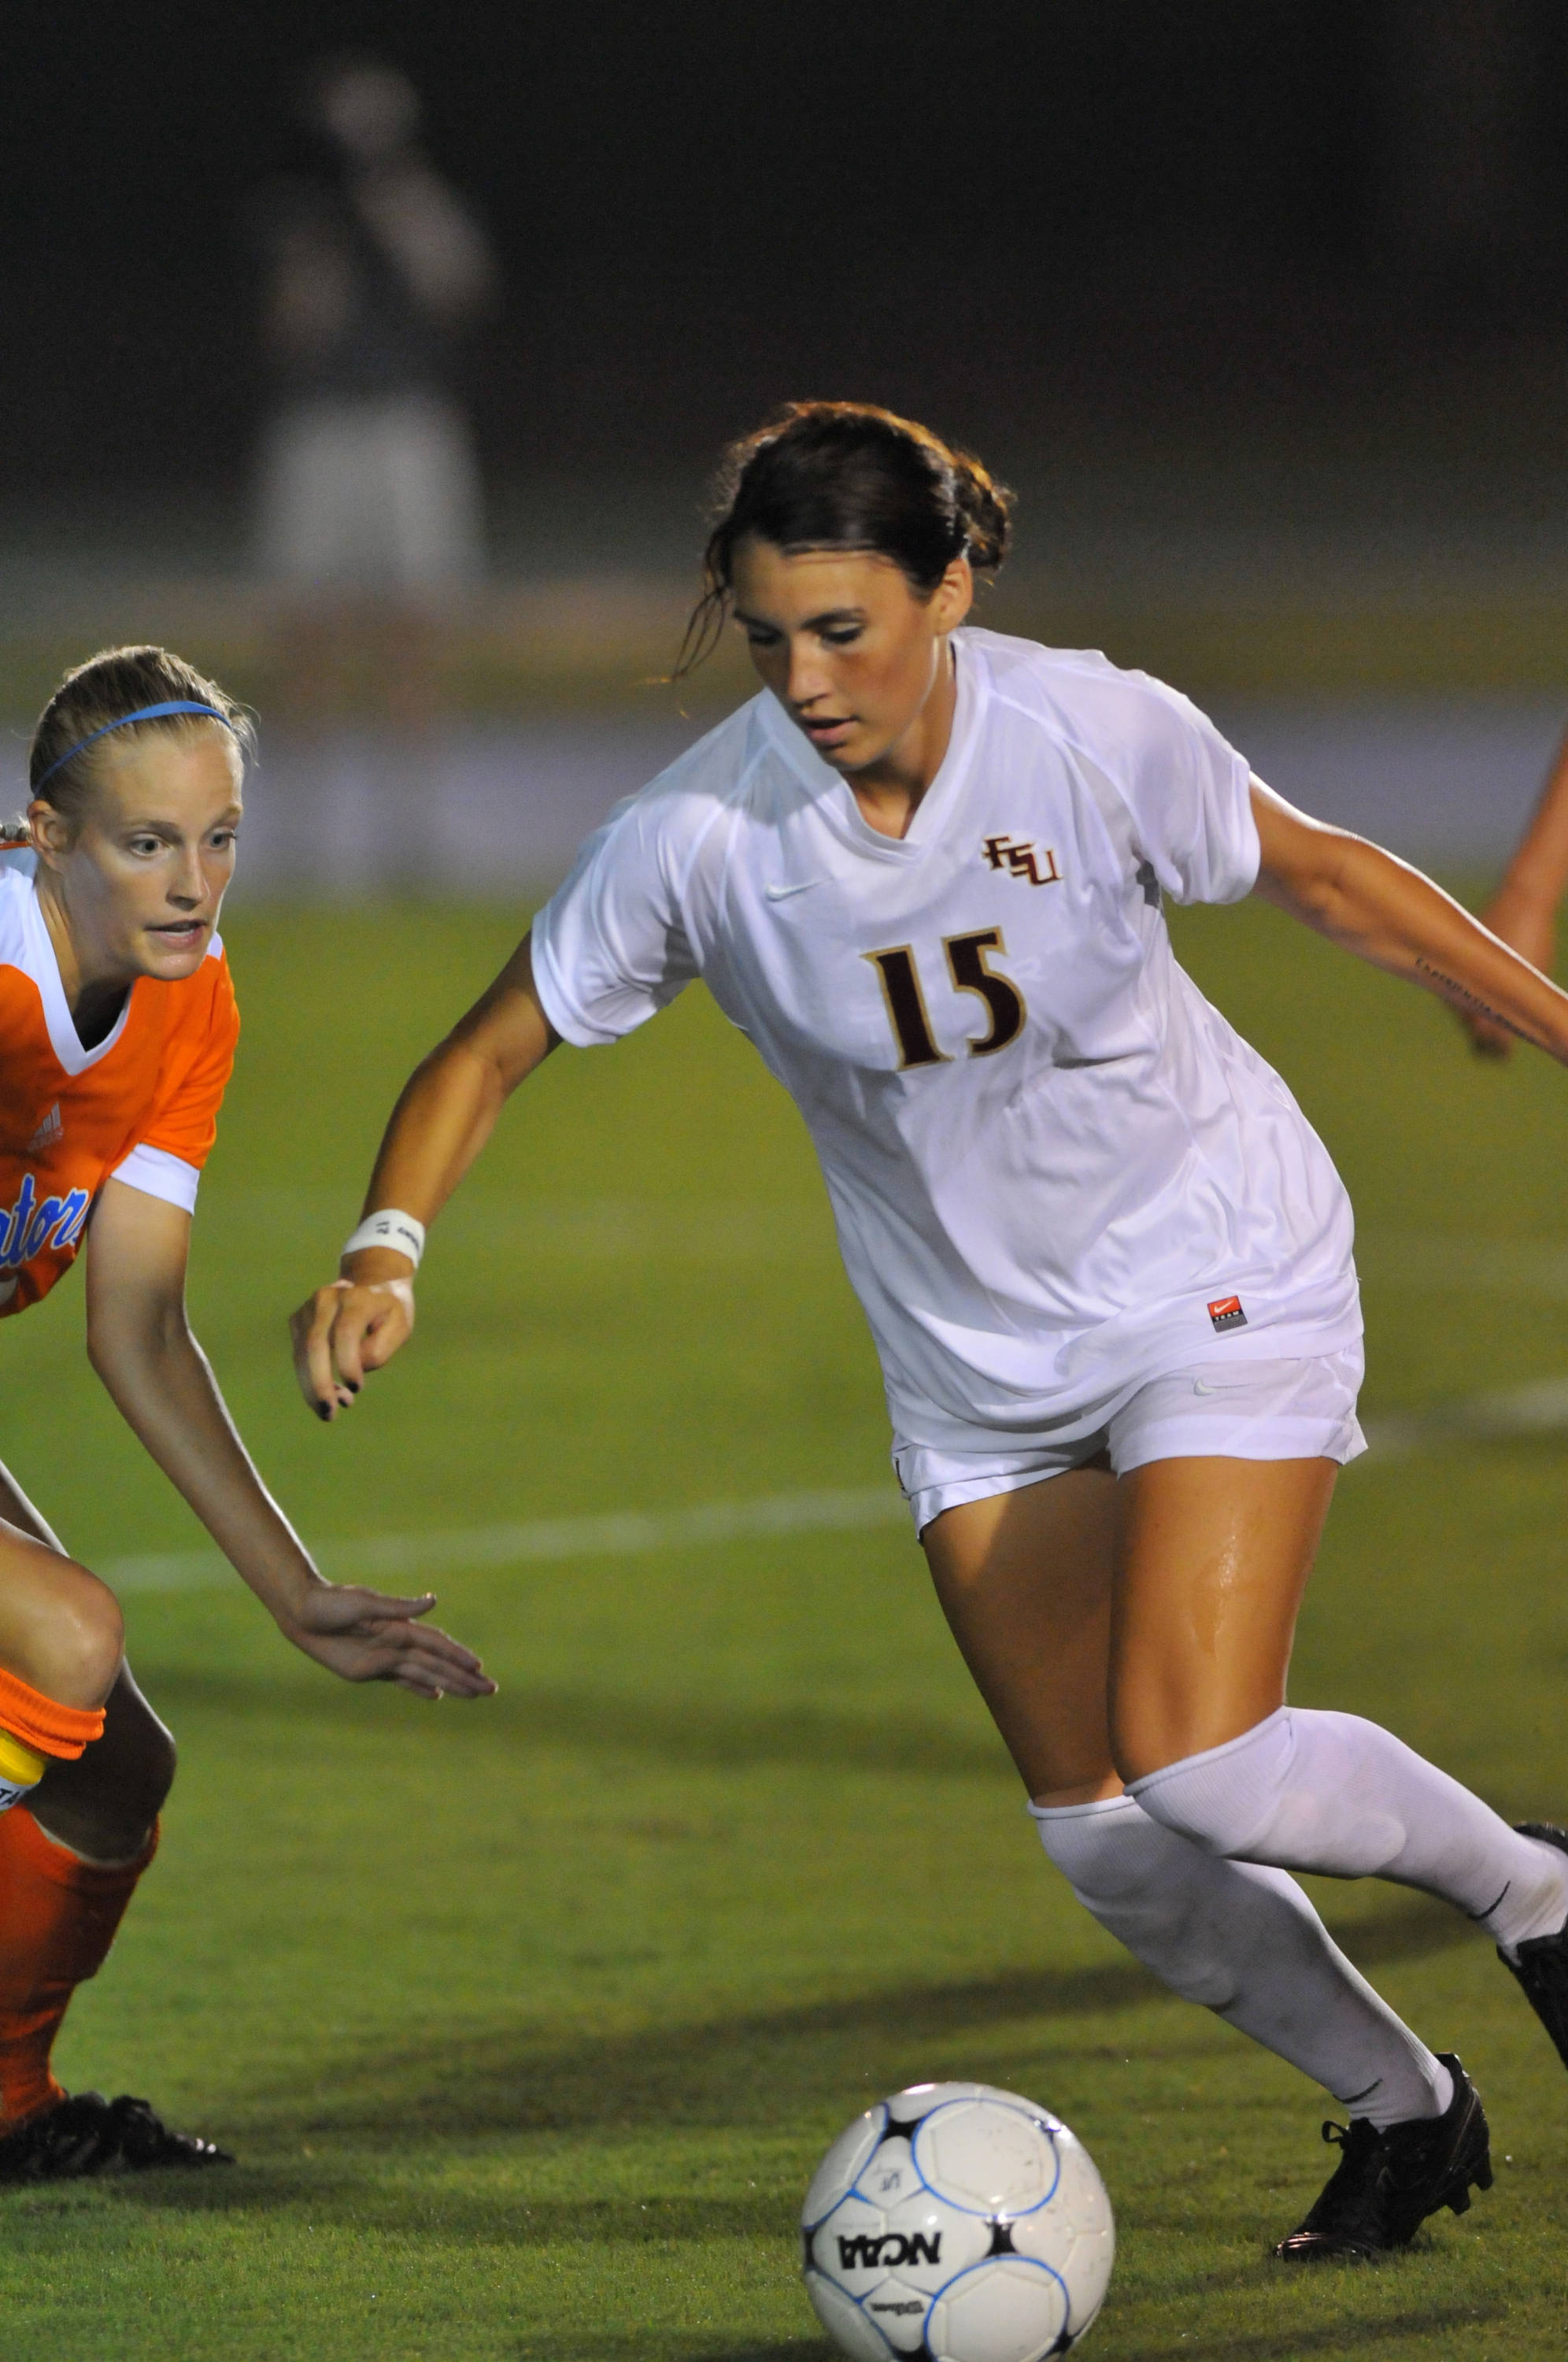 Tiana Brockway controls the ball against the Gators.